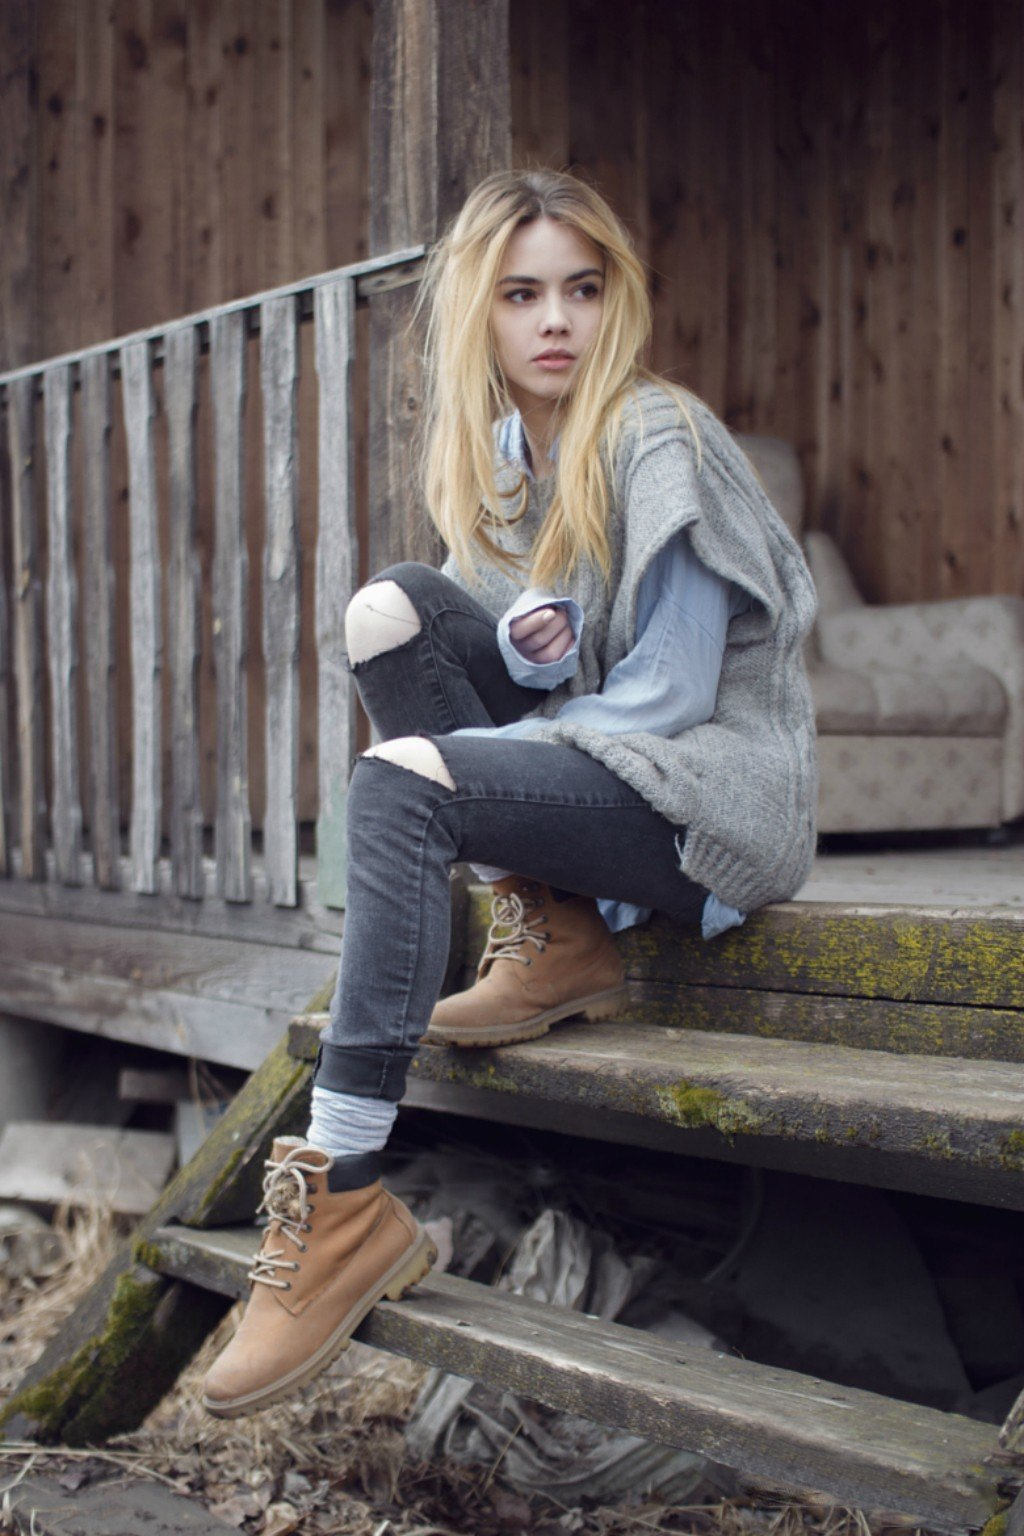 Women, Blonde, Jeans, Villages, Stairs, Long Hair Hd -6927